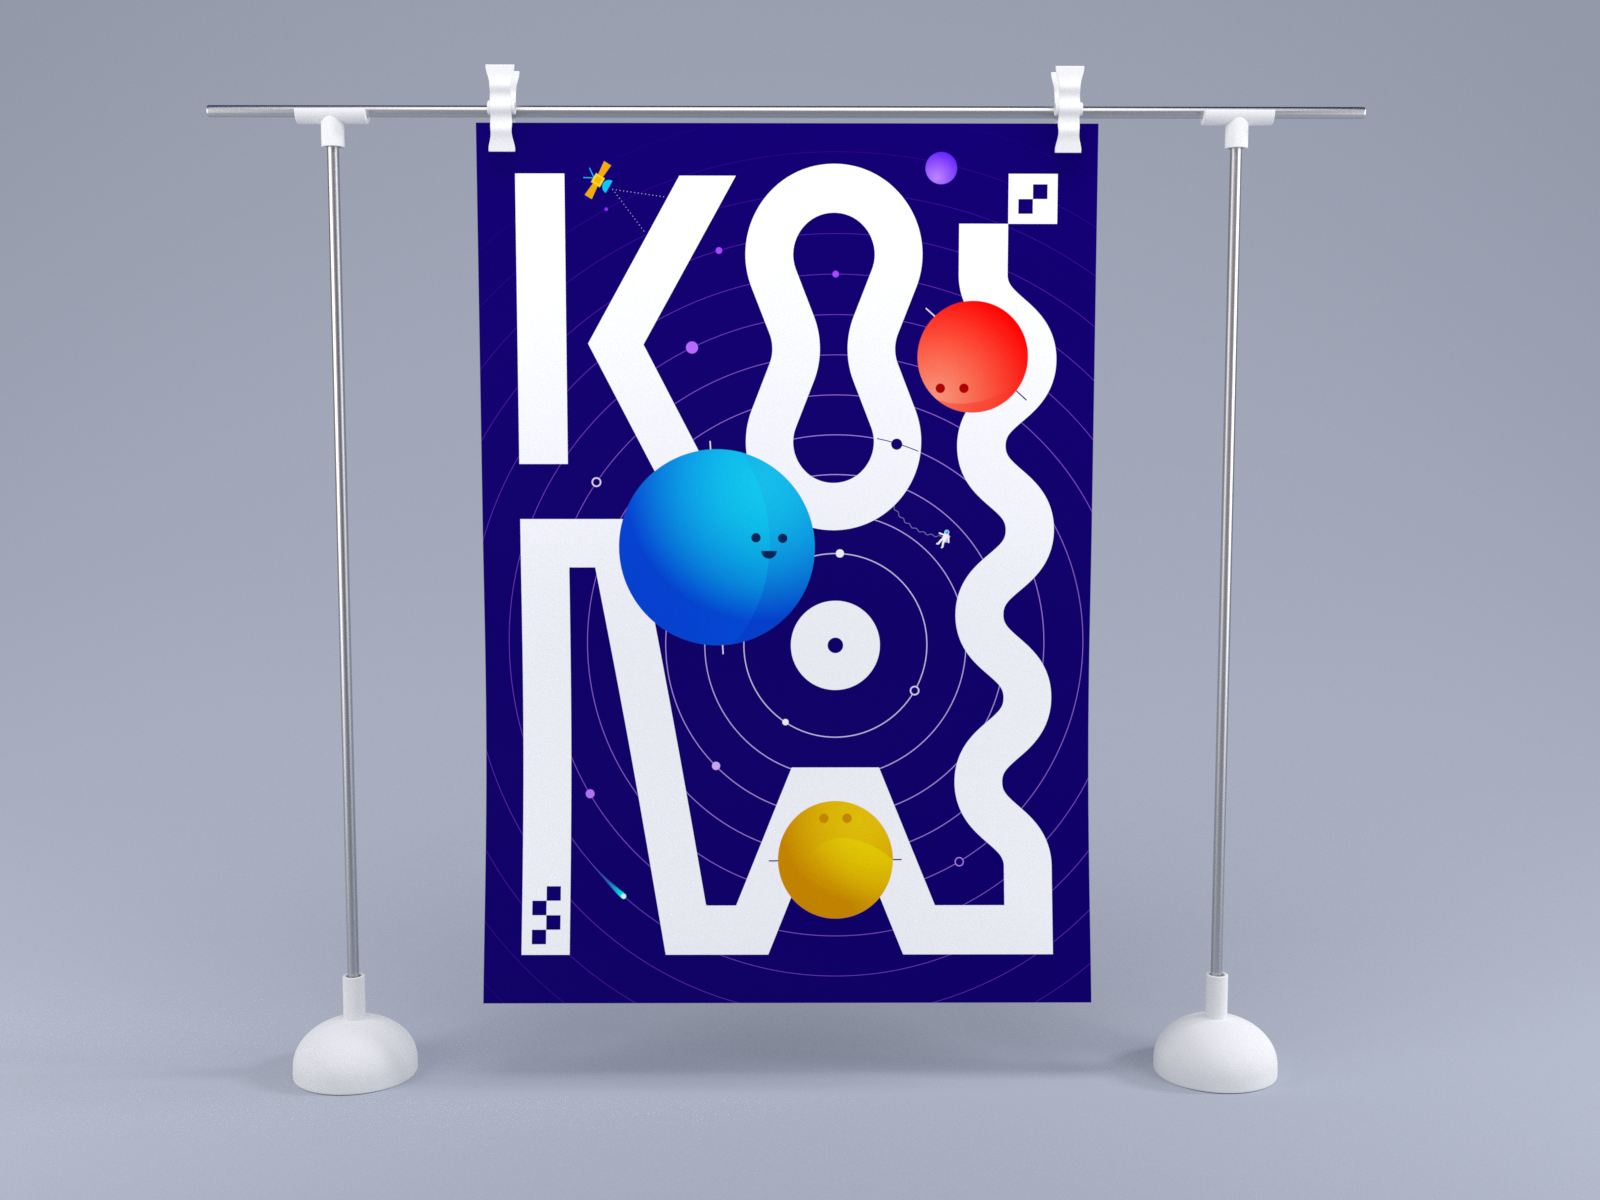 Kosmos typography astronaut sattelite warp yellow blue red print poster toy fun kiddy kids 3d render planets kosmos cosmos cosmo space